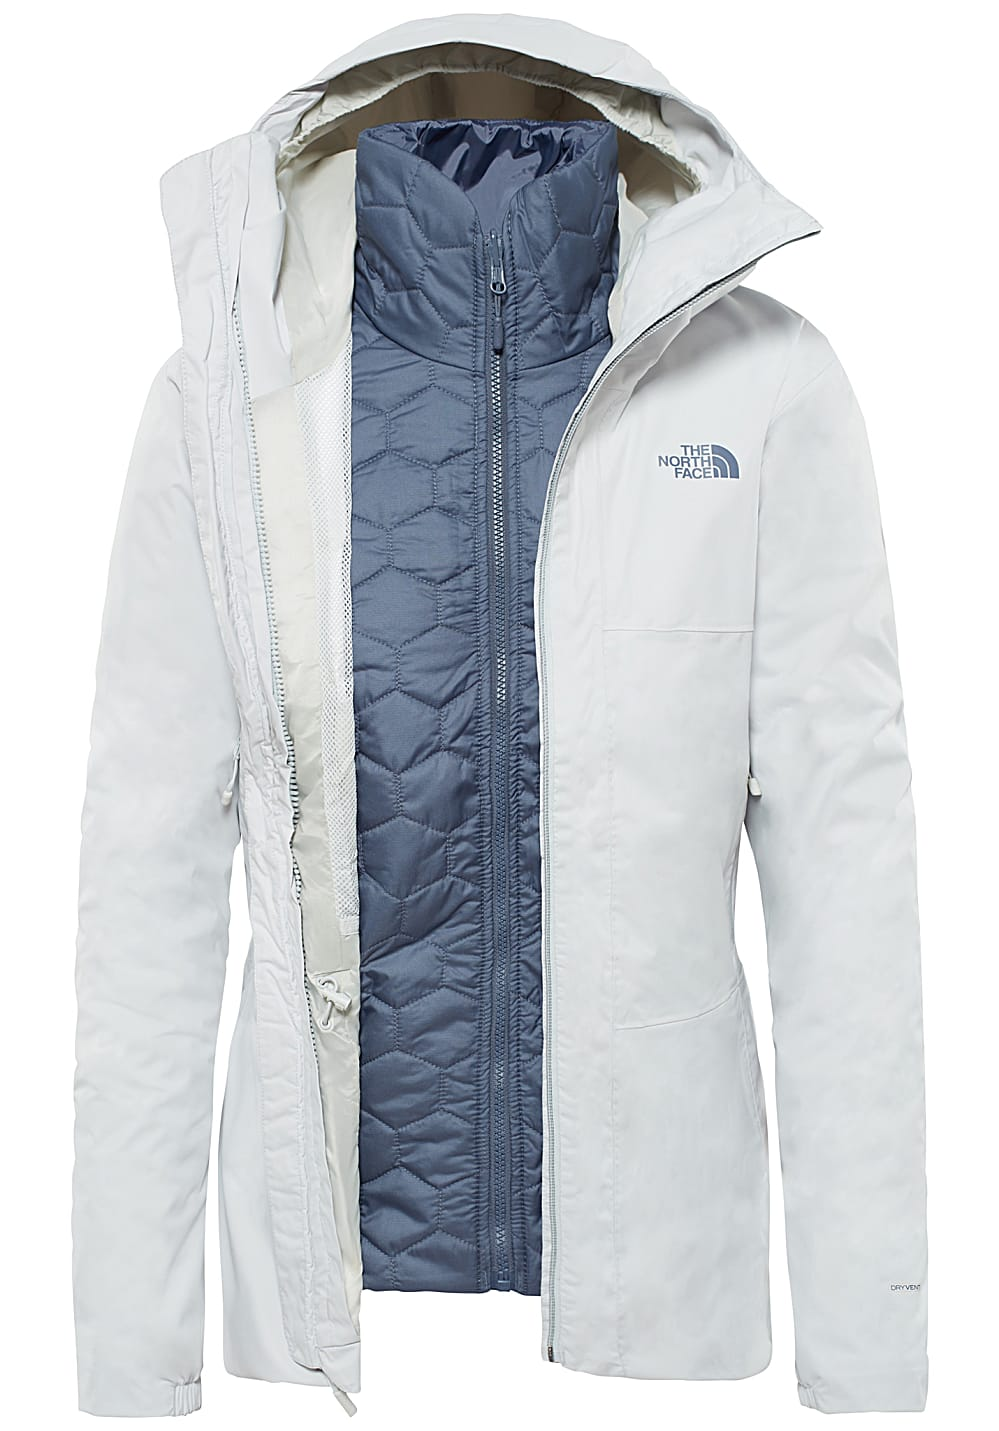 377790eac THE NORTH FACE Hikesteller Triclimate - Outdoor Jacket for Women - Grey